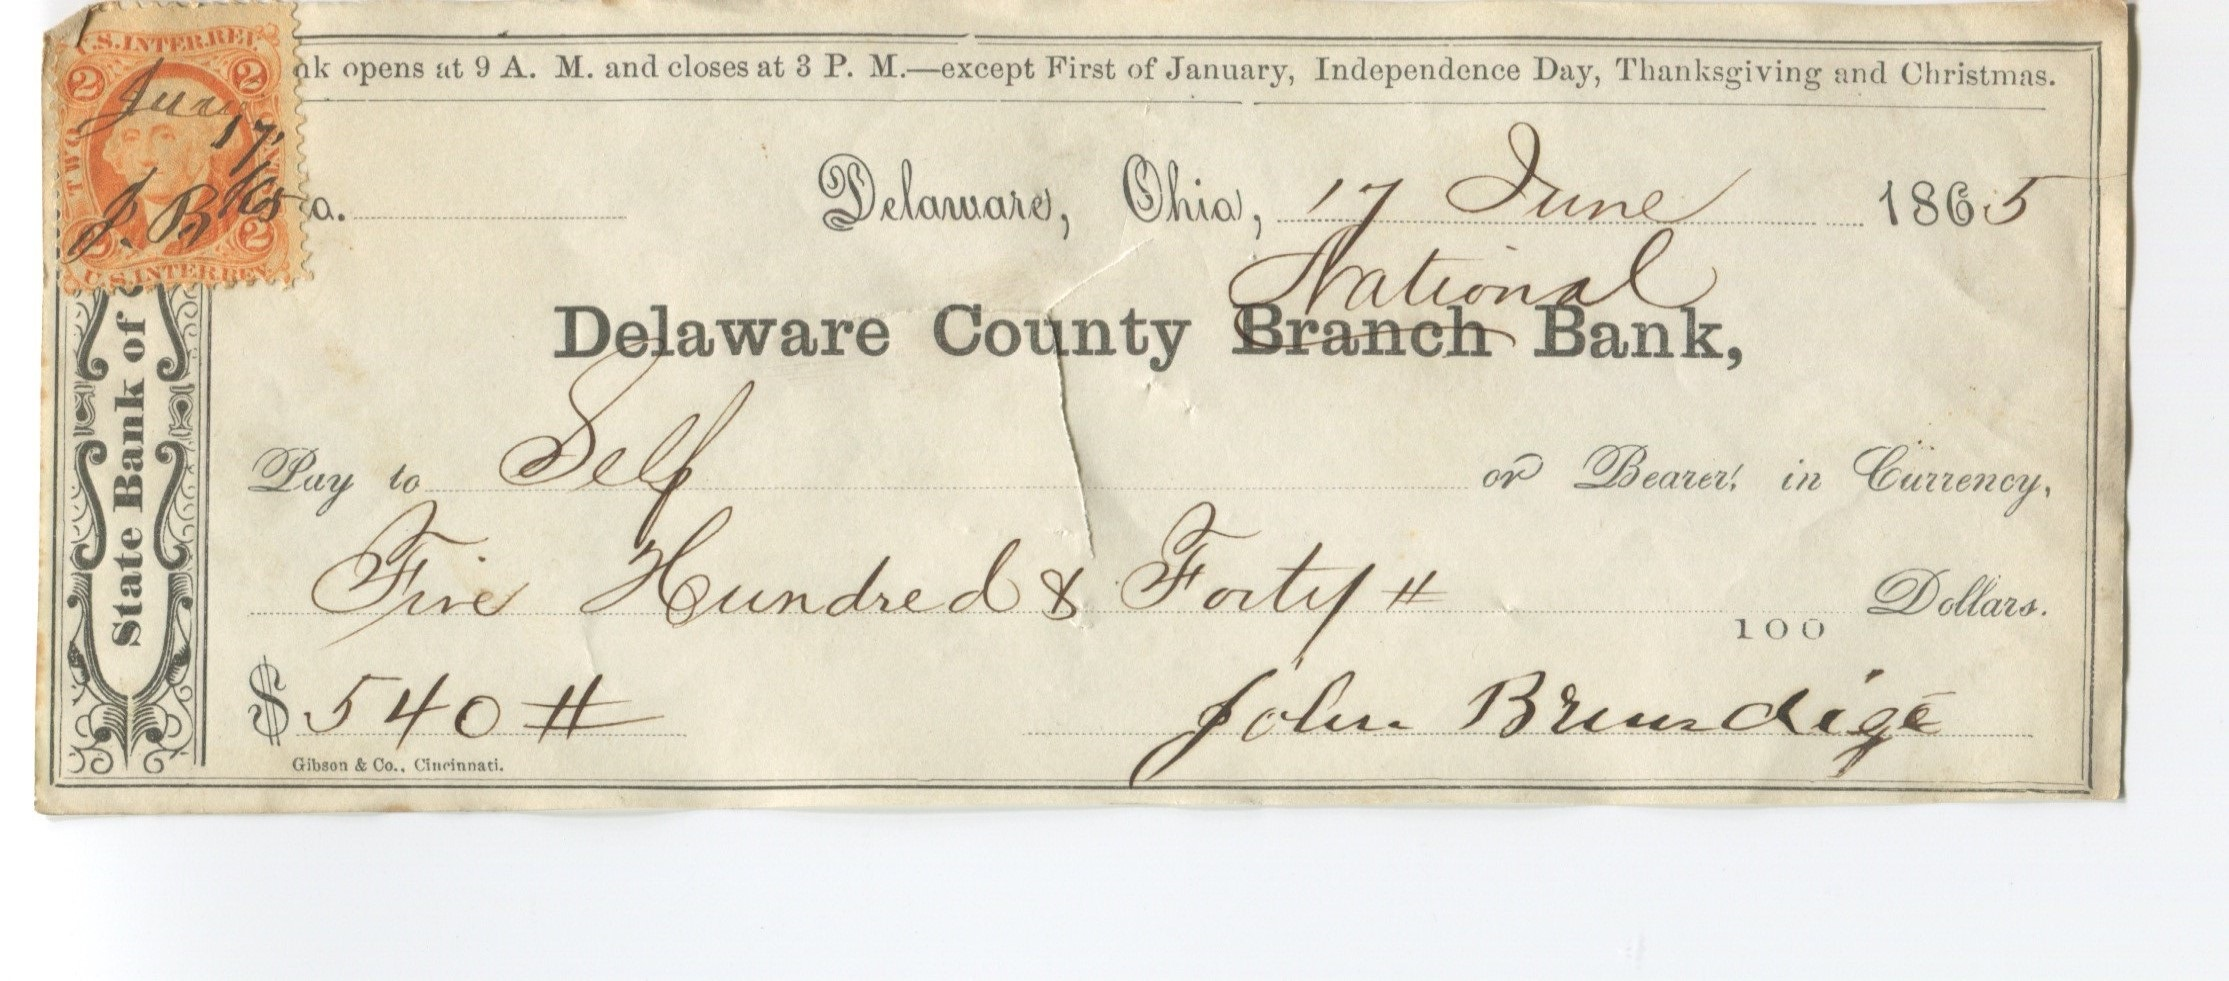 How To Write A Check Stepbystep Explanation This Check Was Issued June 17,  1865,